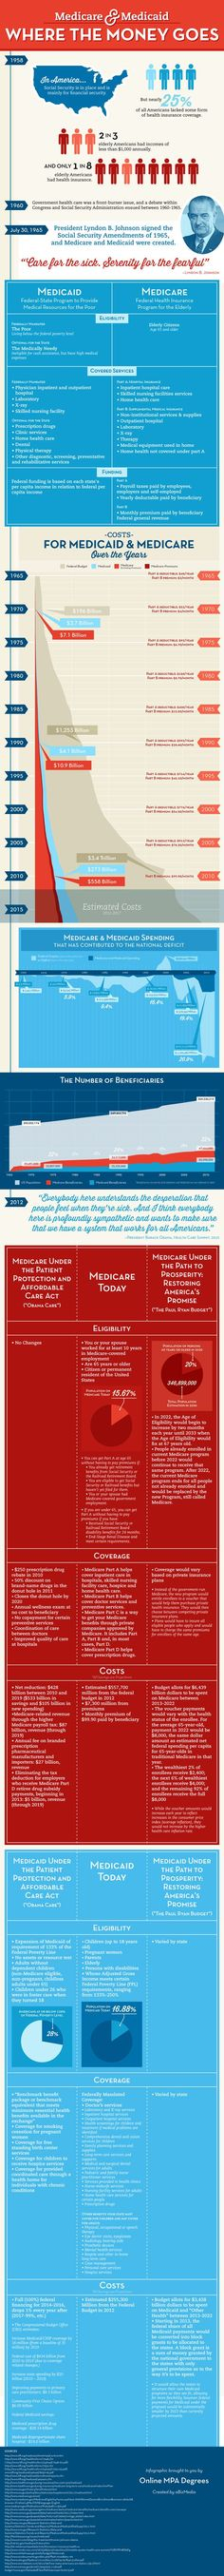 Medicare and Medicaid: Where the Money Goes | Online MPA Degrees #Infographic